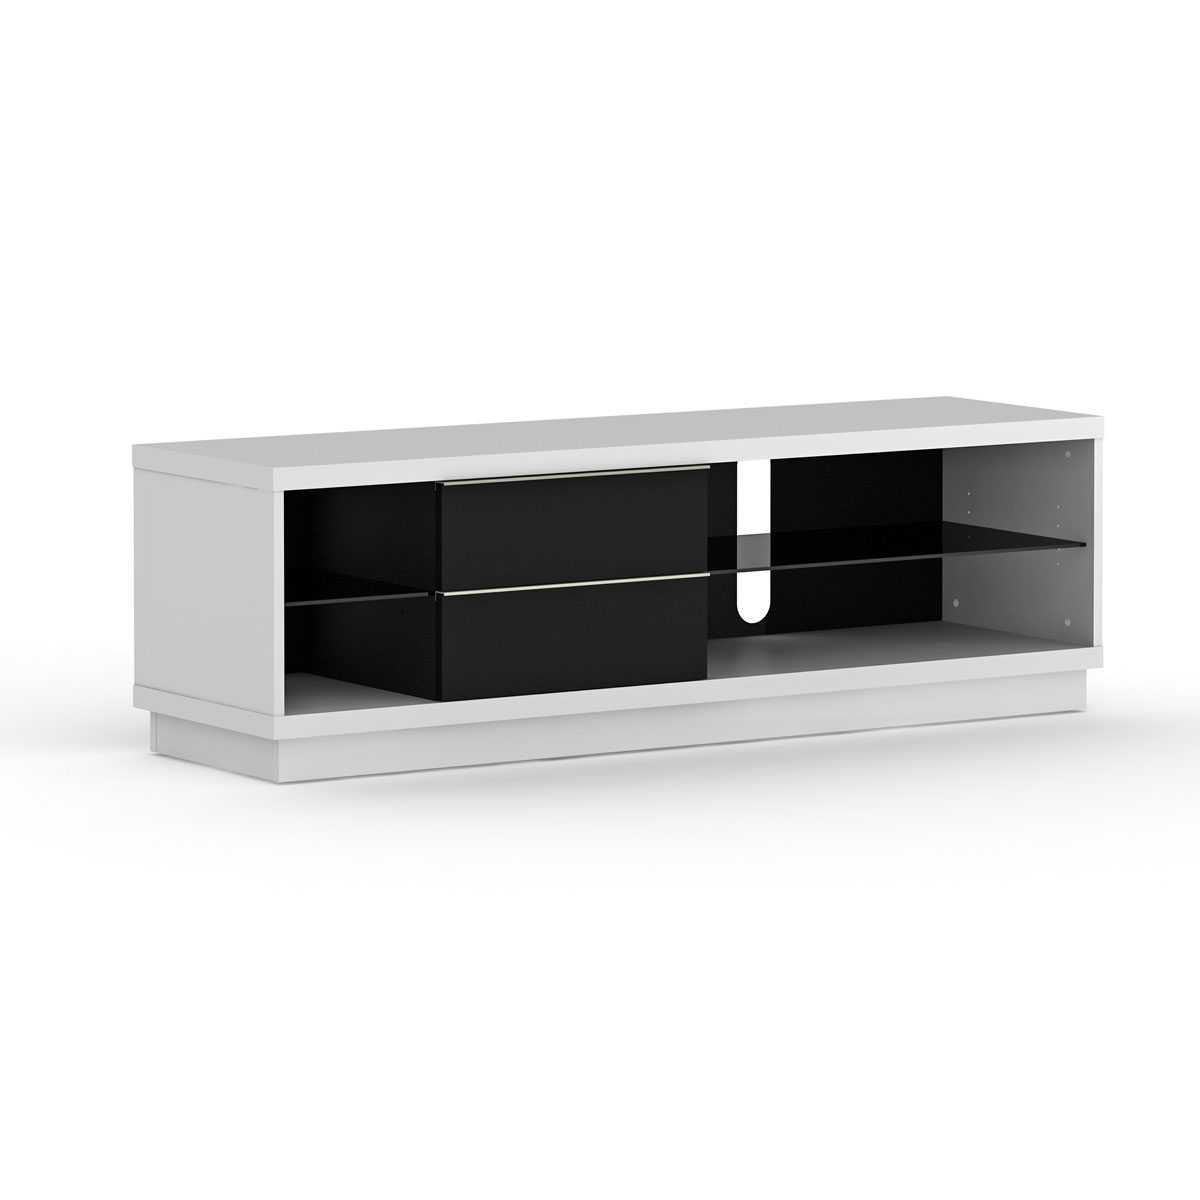 elmob harmony ha 160 03 blanc meuble tv elmob sur ldlc. Black Bedroom Furniture Sets. Home Design Ideas